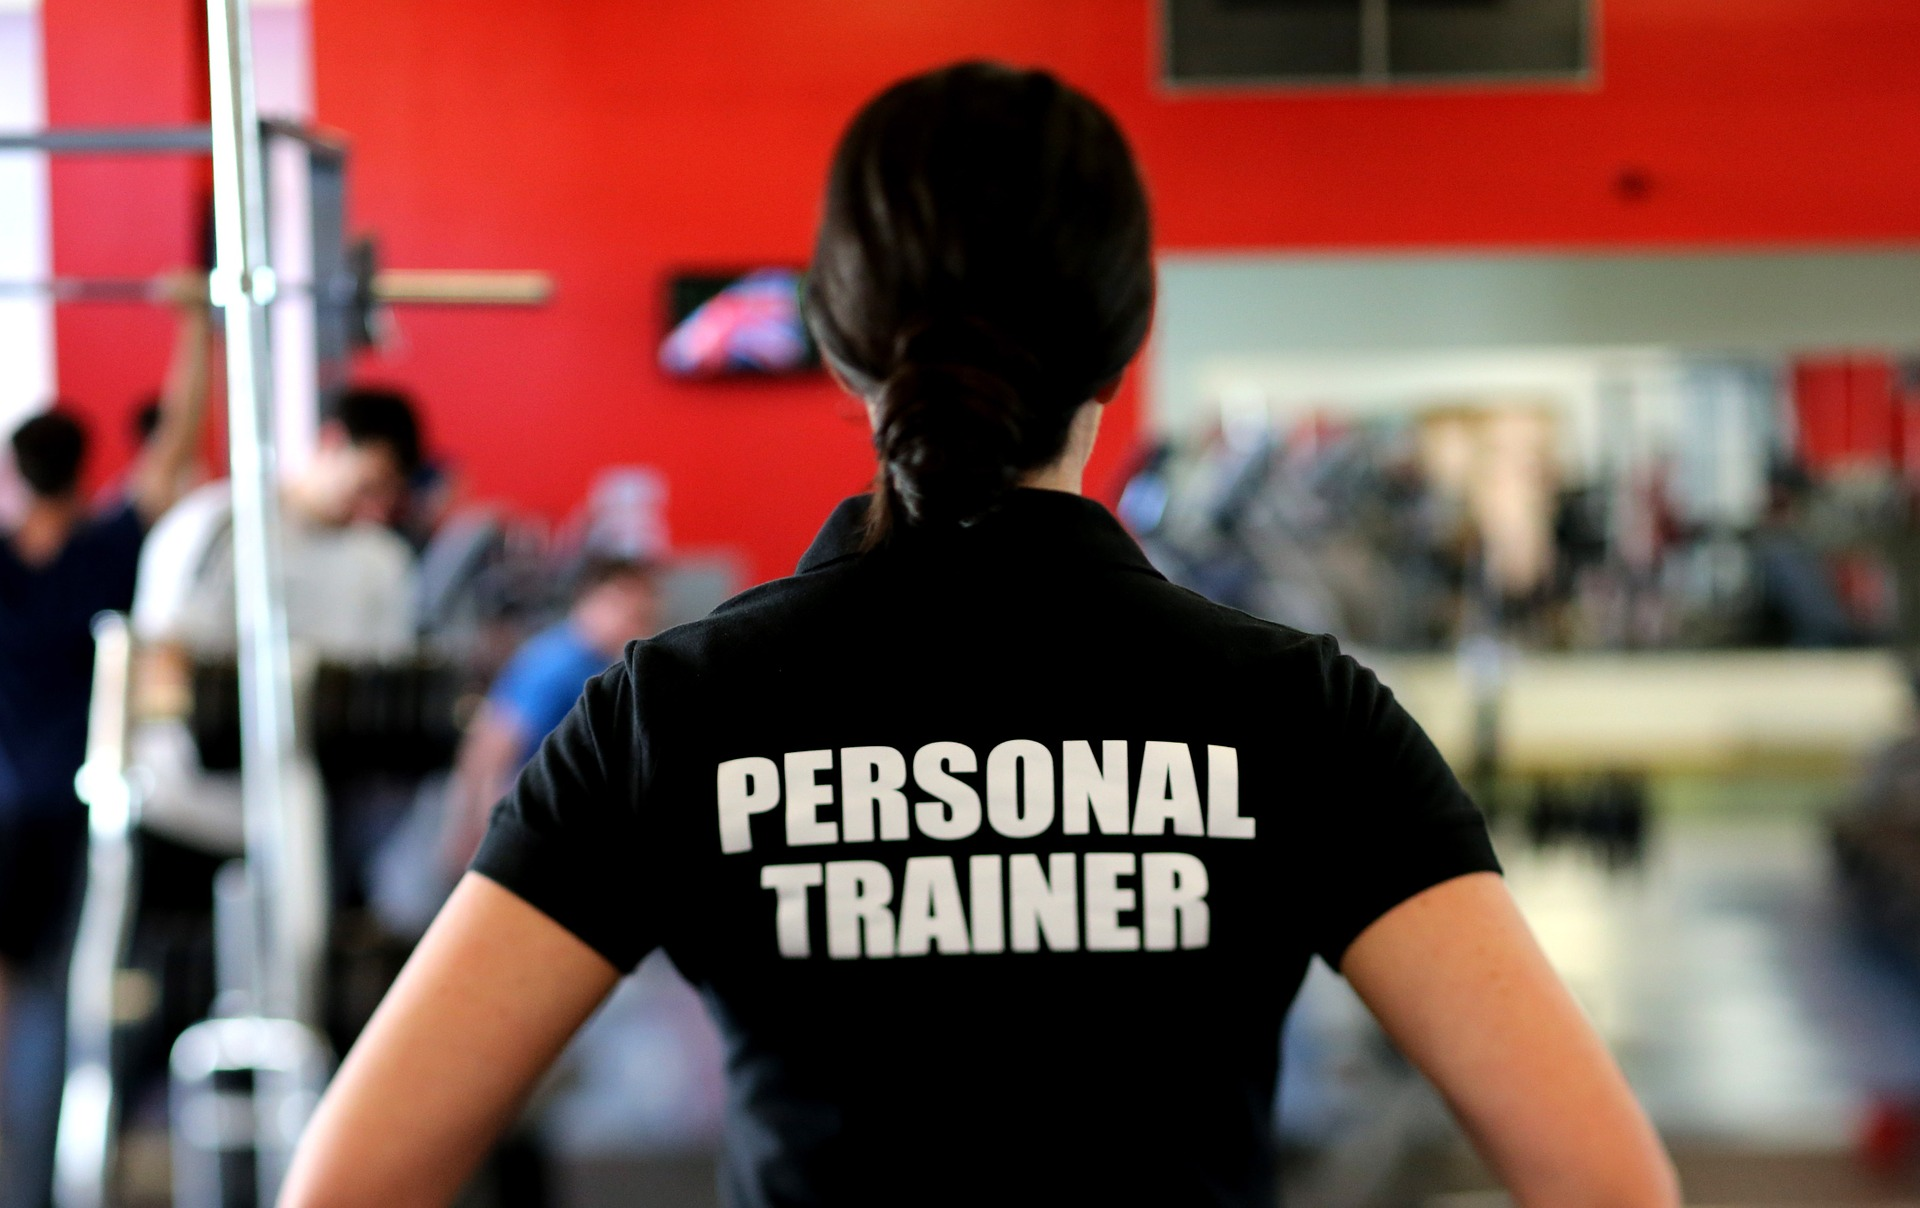 Hire a personal trainer to put you on the right track towards fitness.